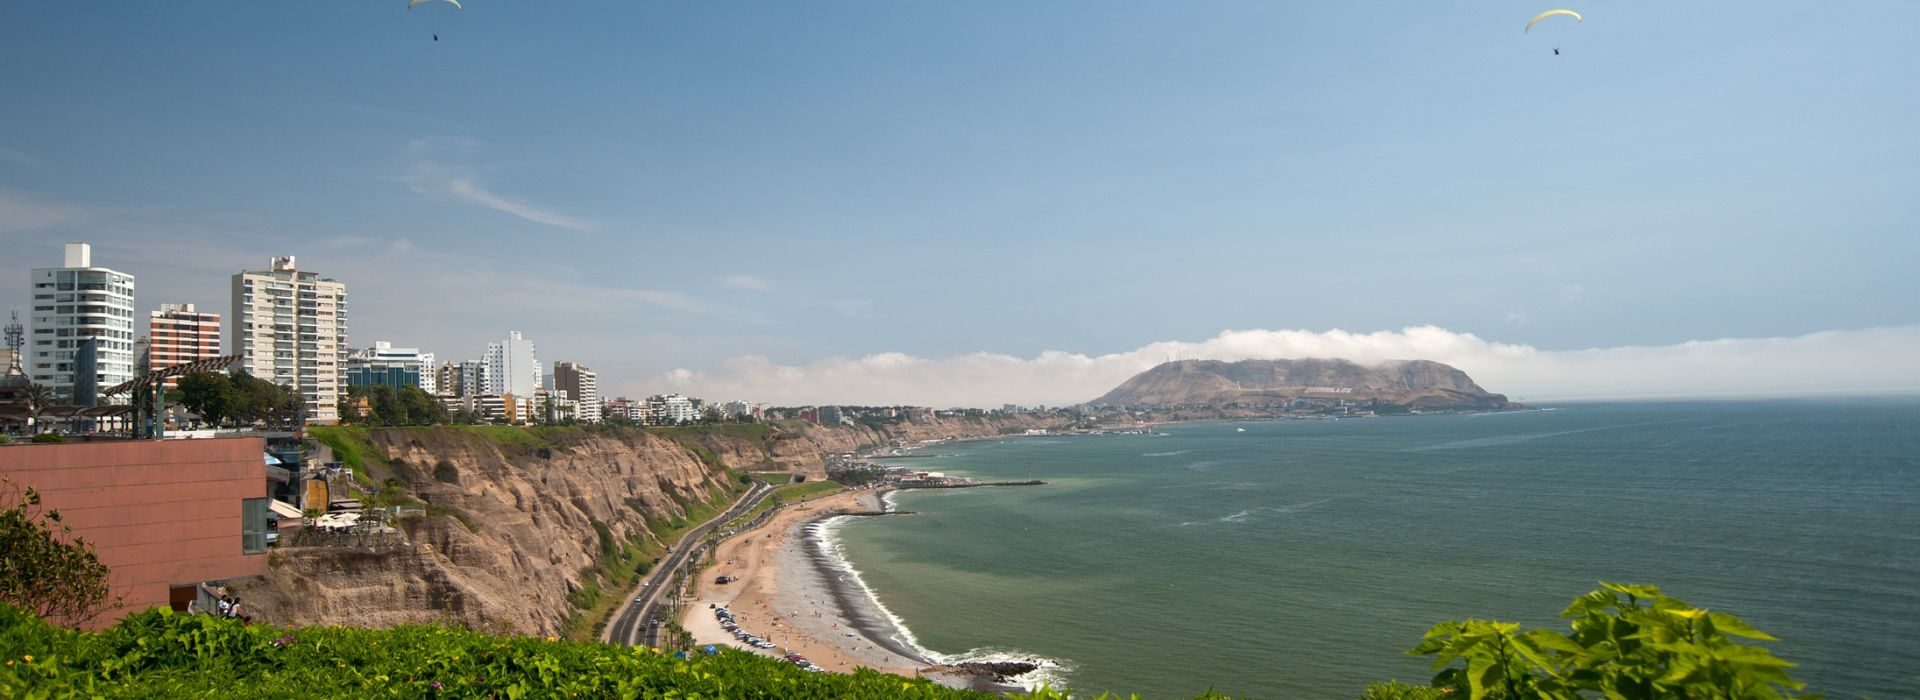 Holidays to Lima will introduce you to a fast growing capital